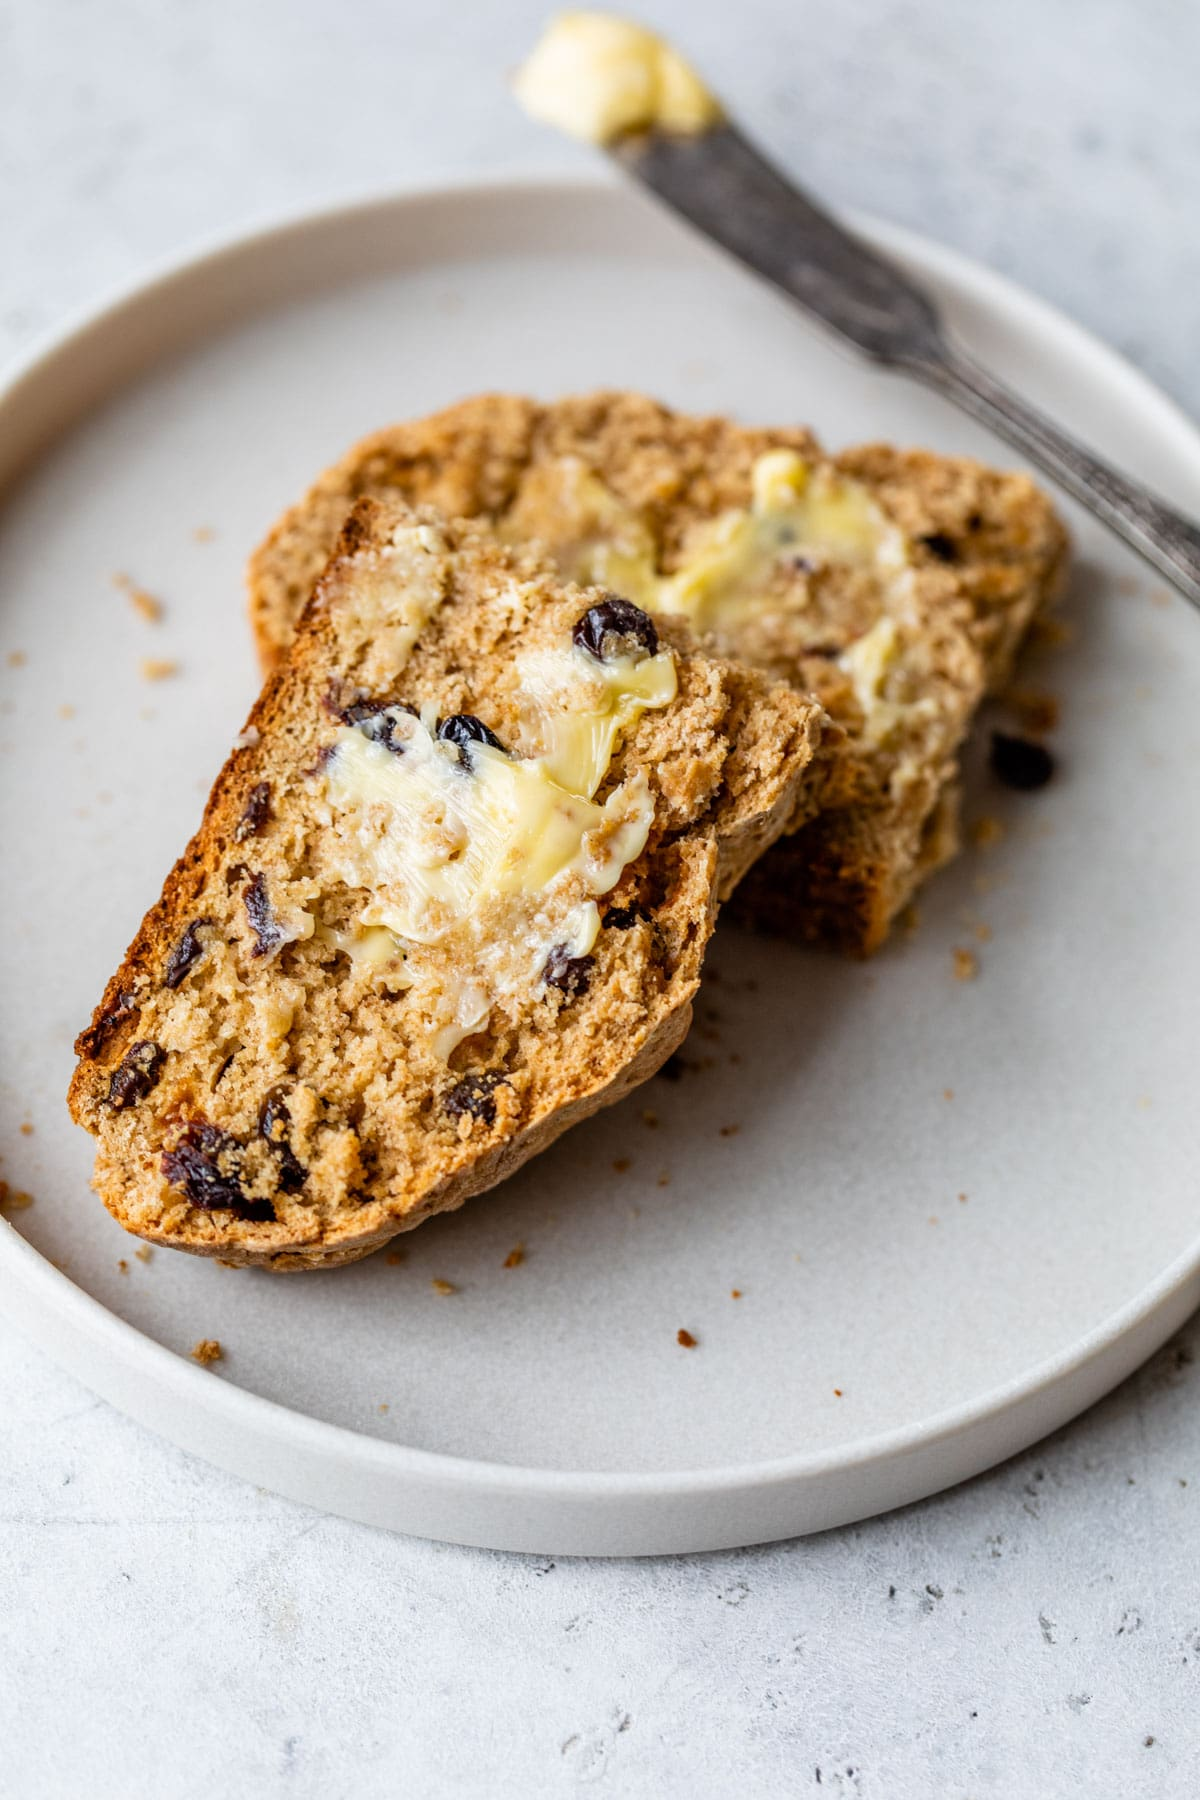 I make this Whole Wheat Irish Soda Bread every St. Patrick's Day. It's the best and easiest recipe!